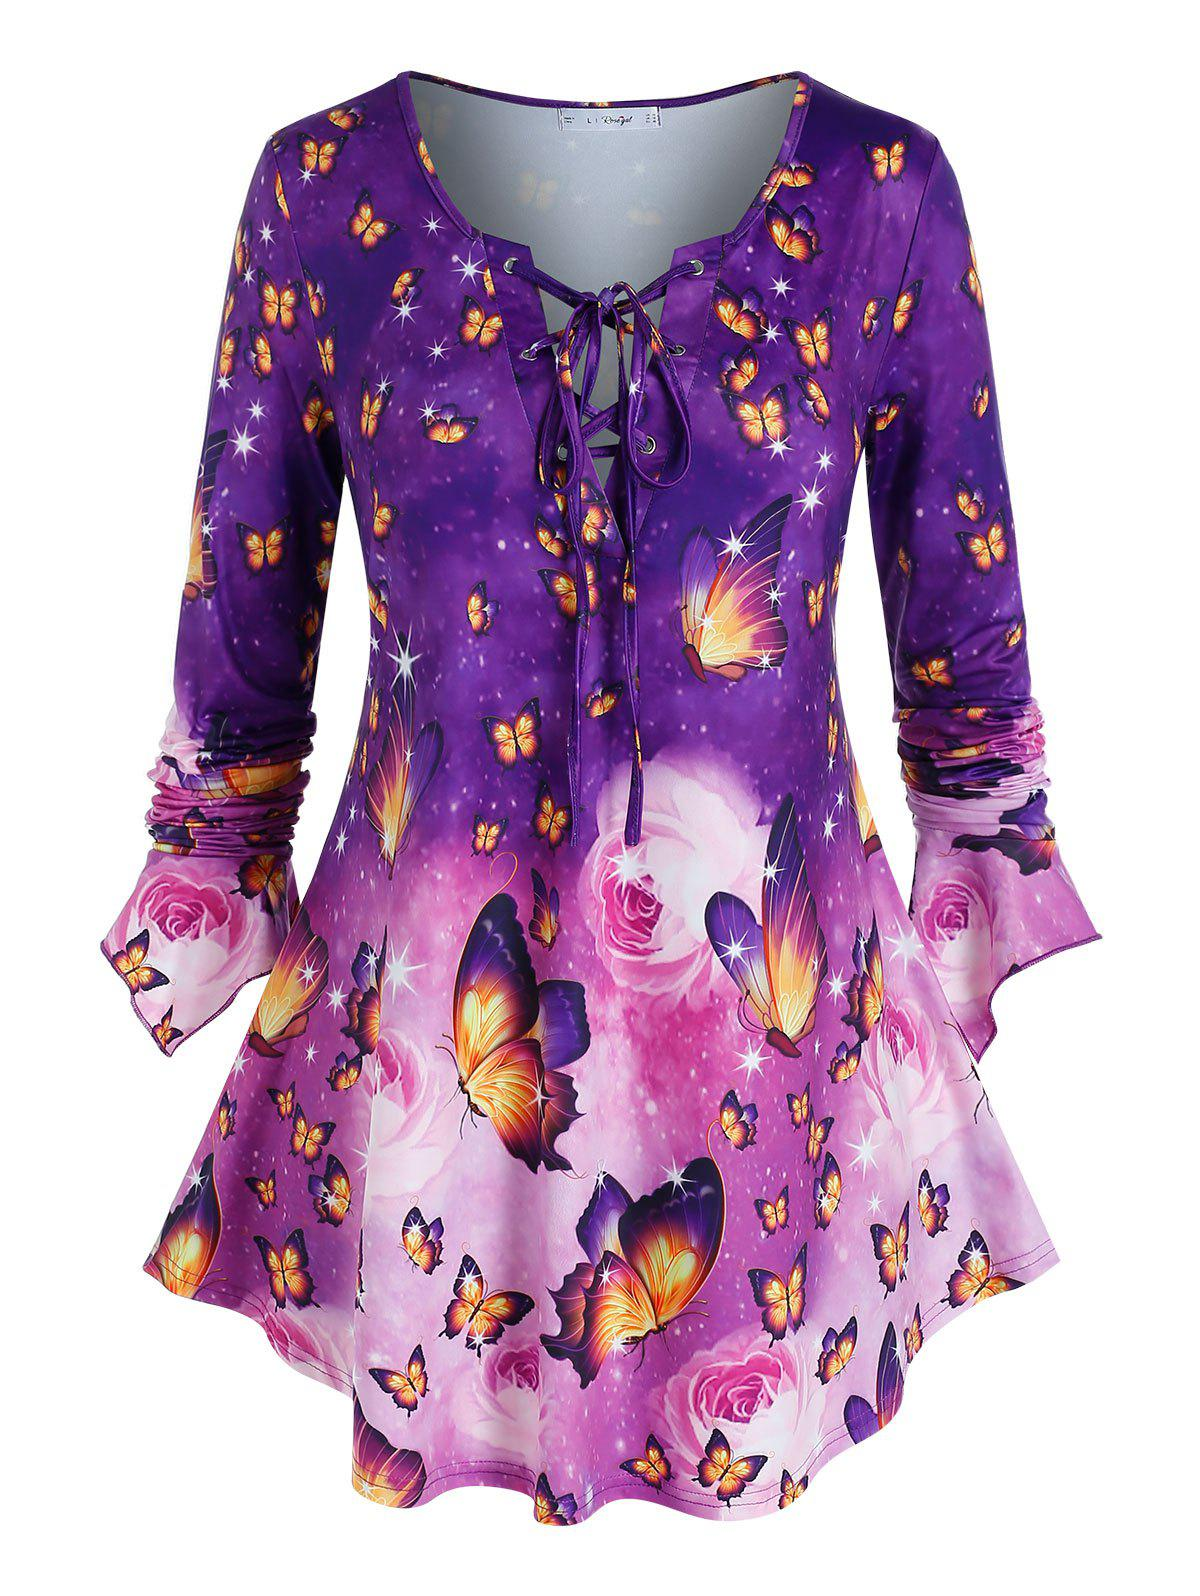 Plus Size Lace Up Butterfly Print Bell Sleeve Tee - PURPLE 5X